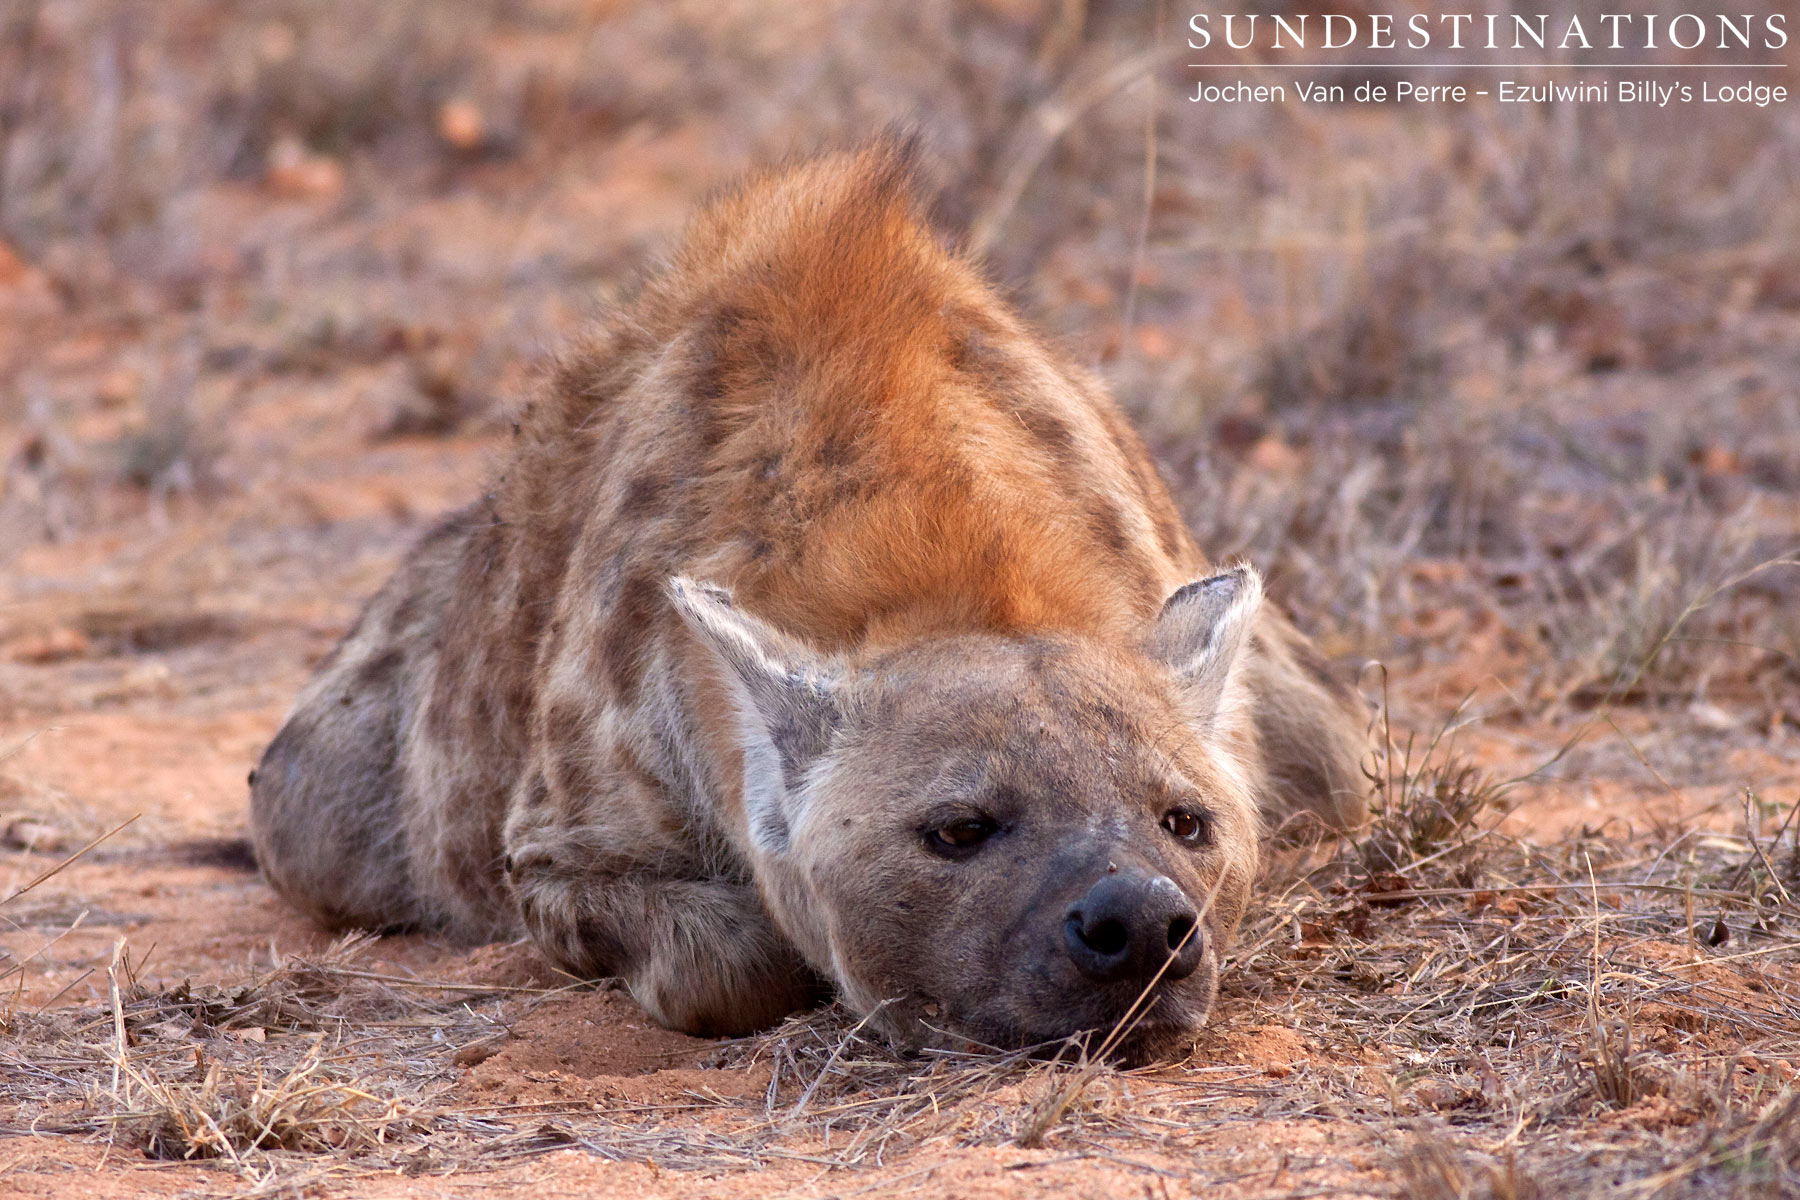 Hyenas and Cubs Parade at Ezulwini